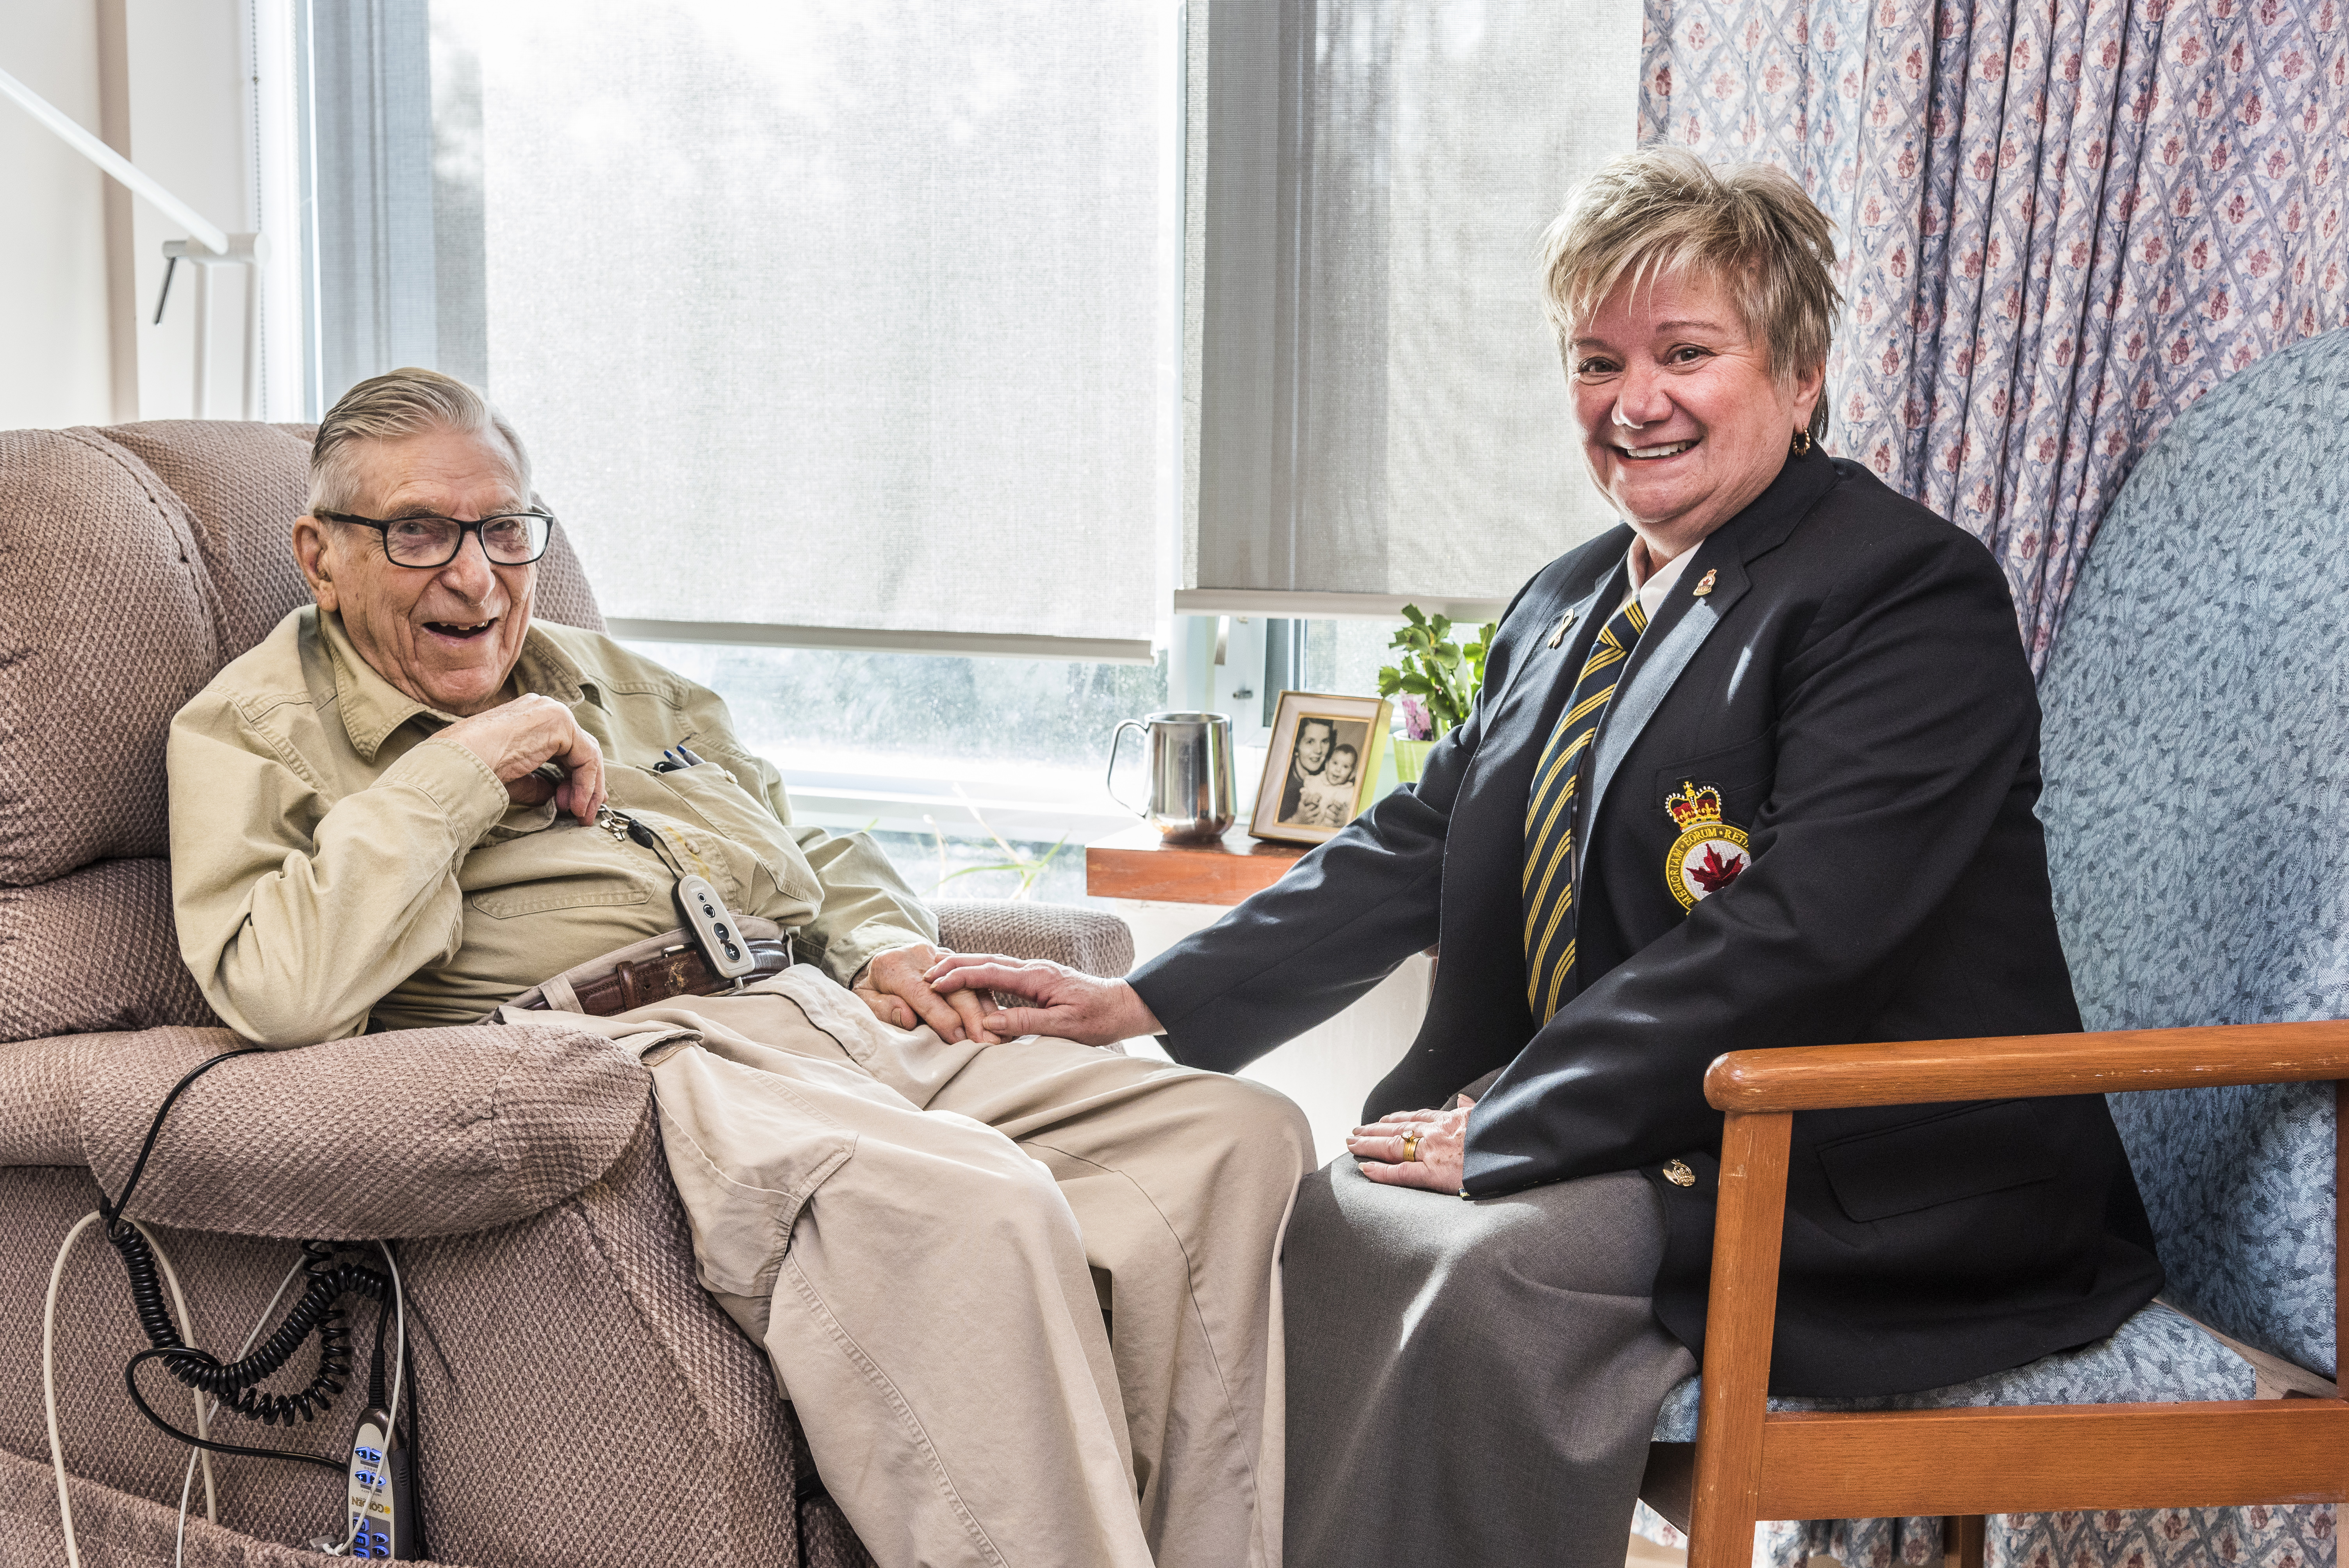 Legionnaire visits a Veteran at The Perley and Rideau Veterans' Health Centre.